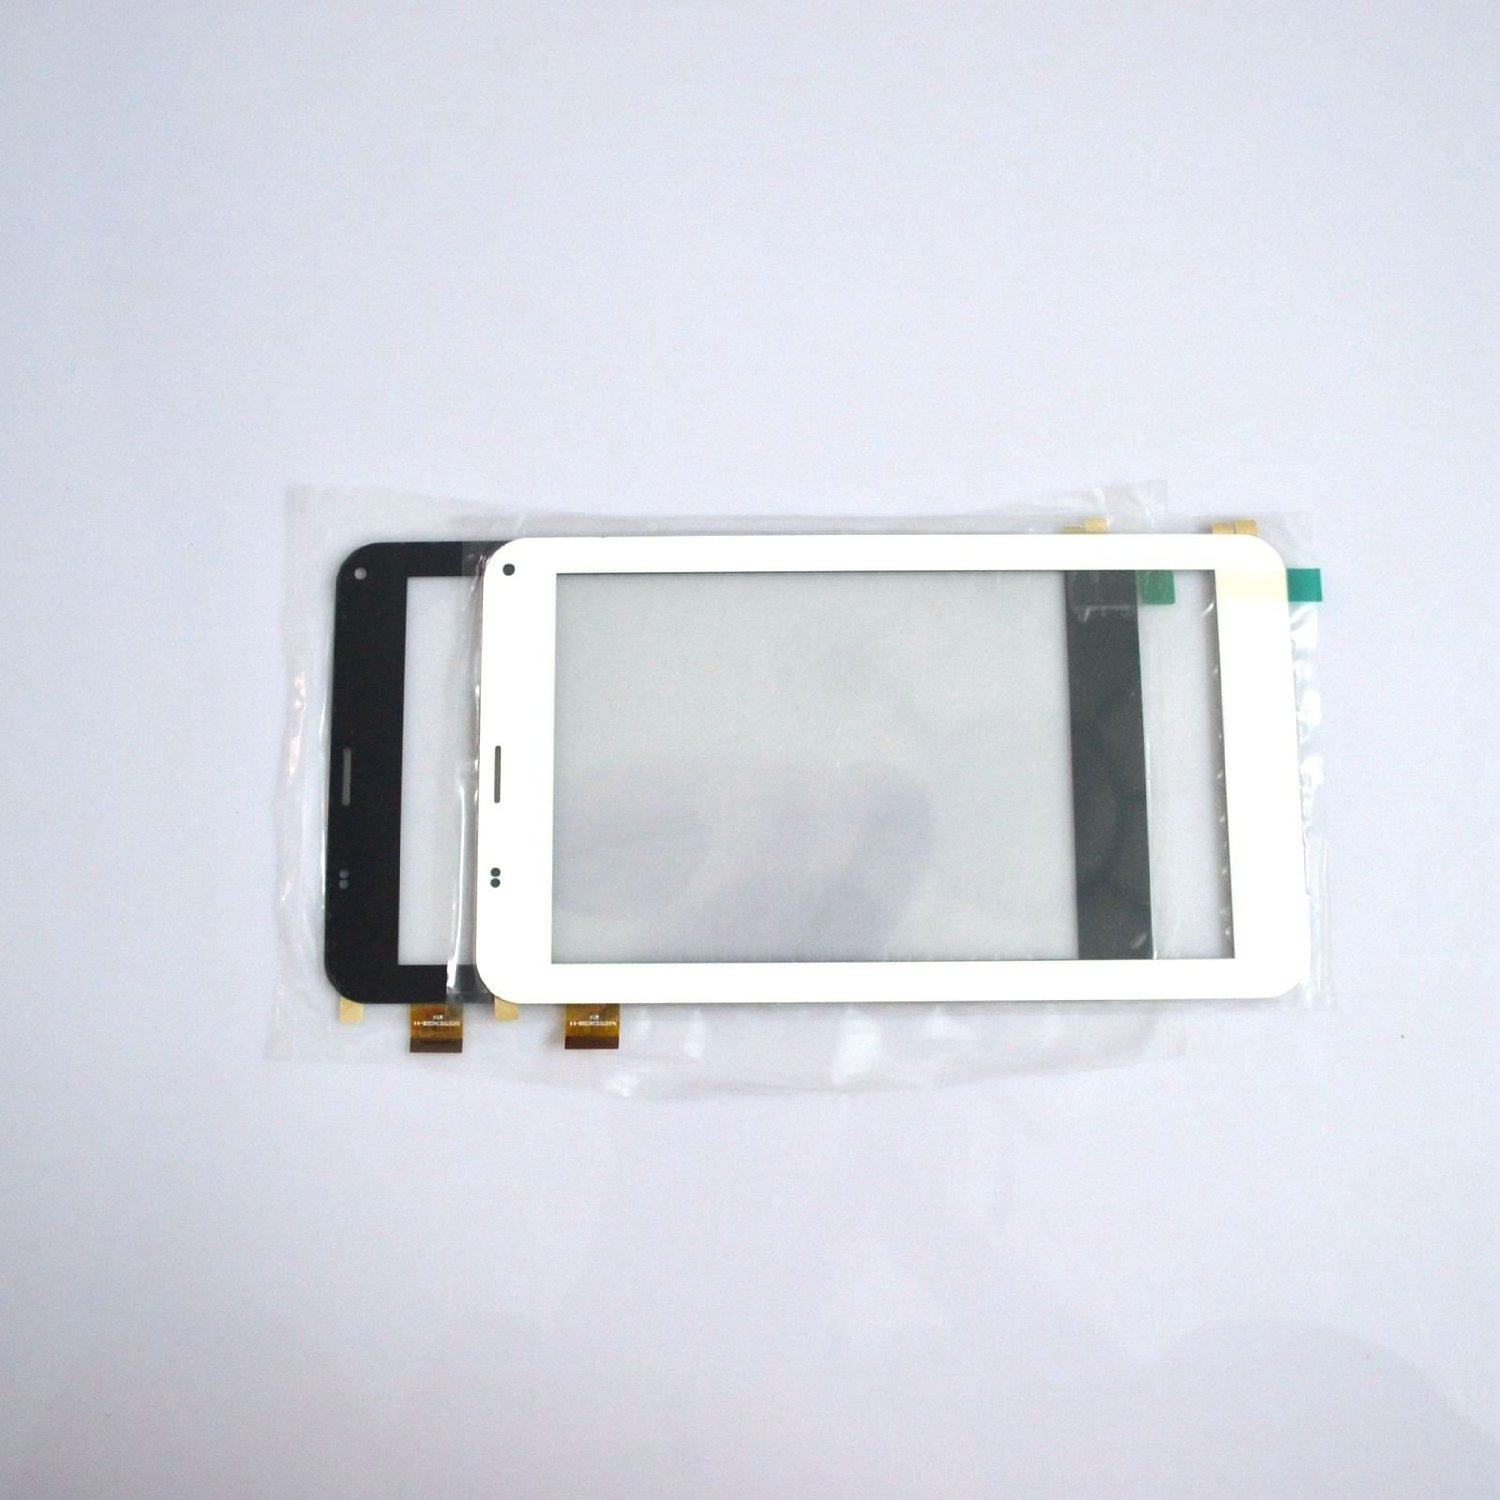 EUTOPING New 7 inch touch screen panel Digitizer for tablet Cube U51gt talk7x